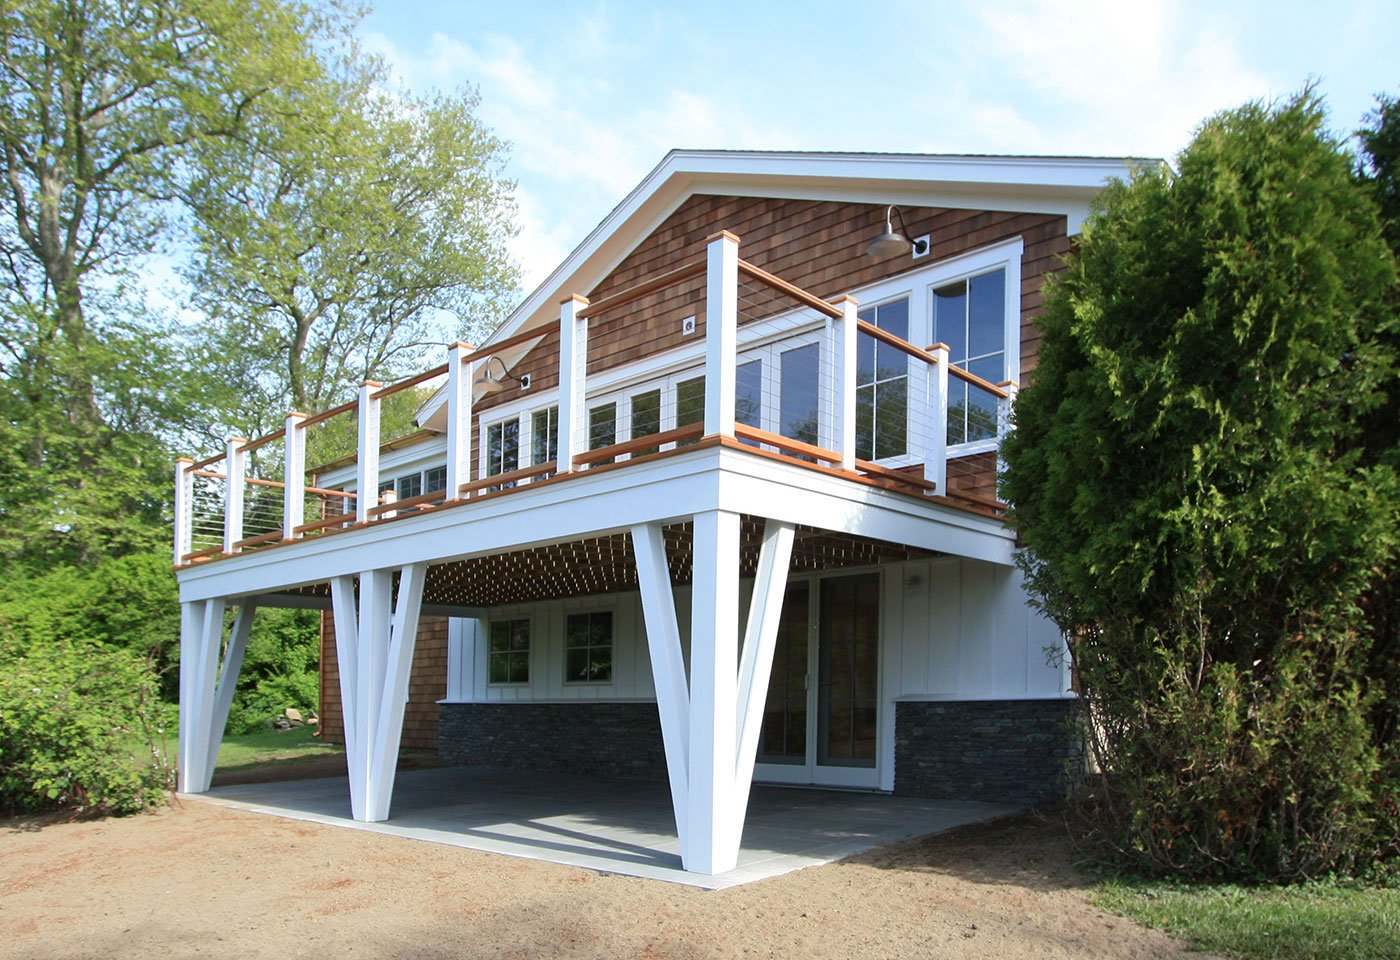 1 Deck build out by in house design - construction build firm in RI